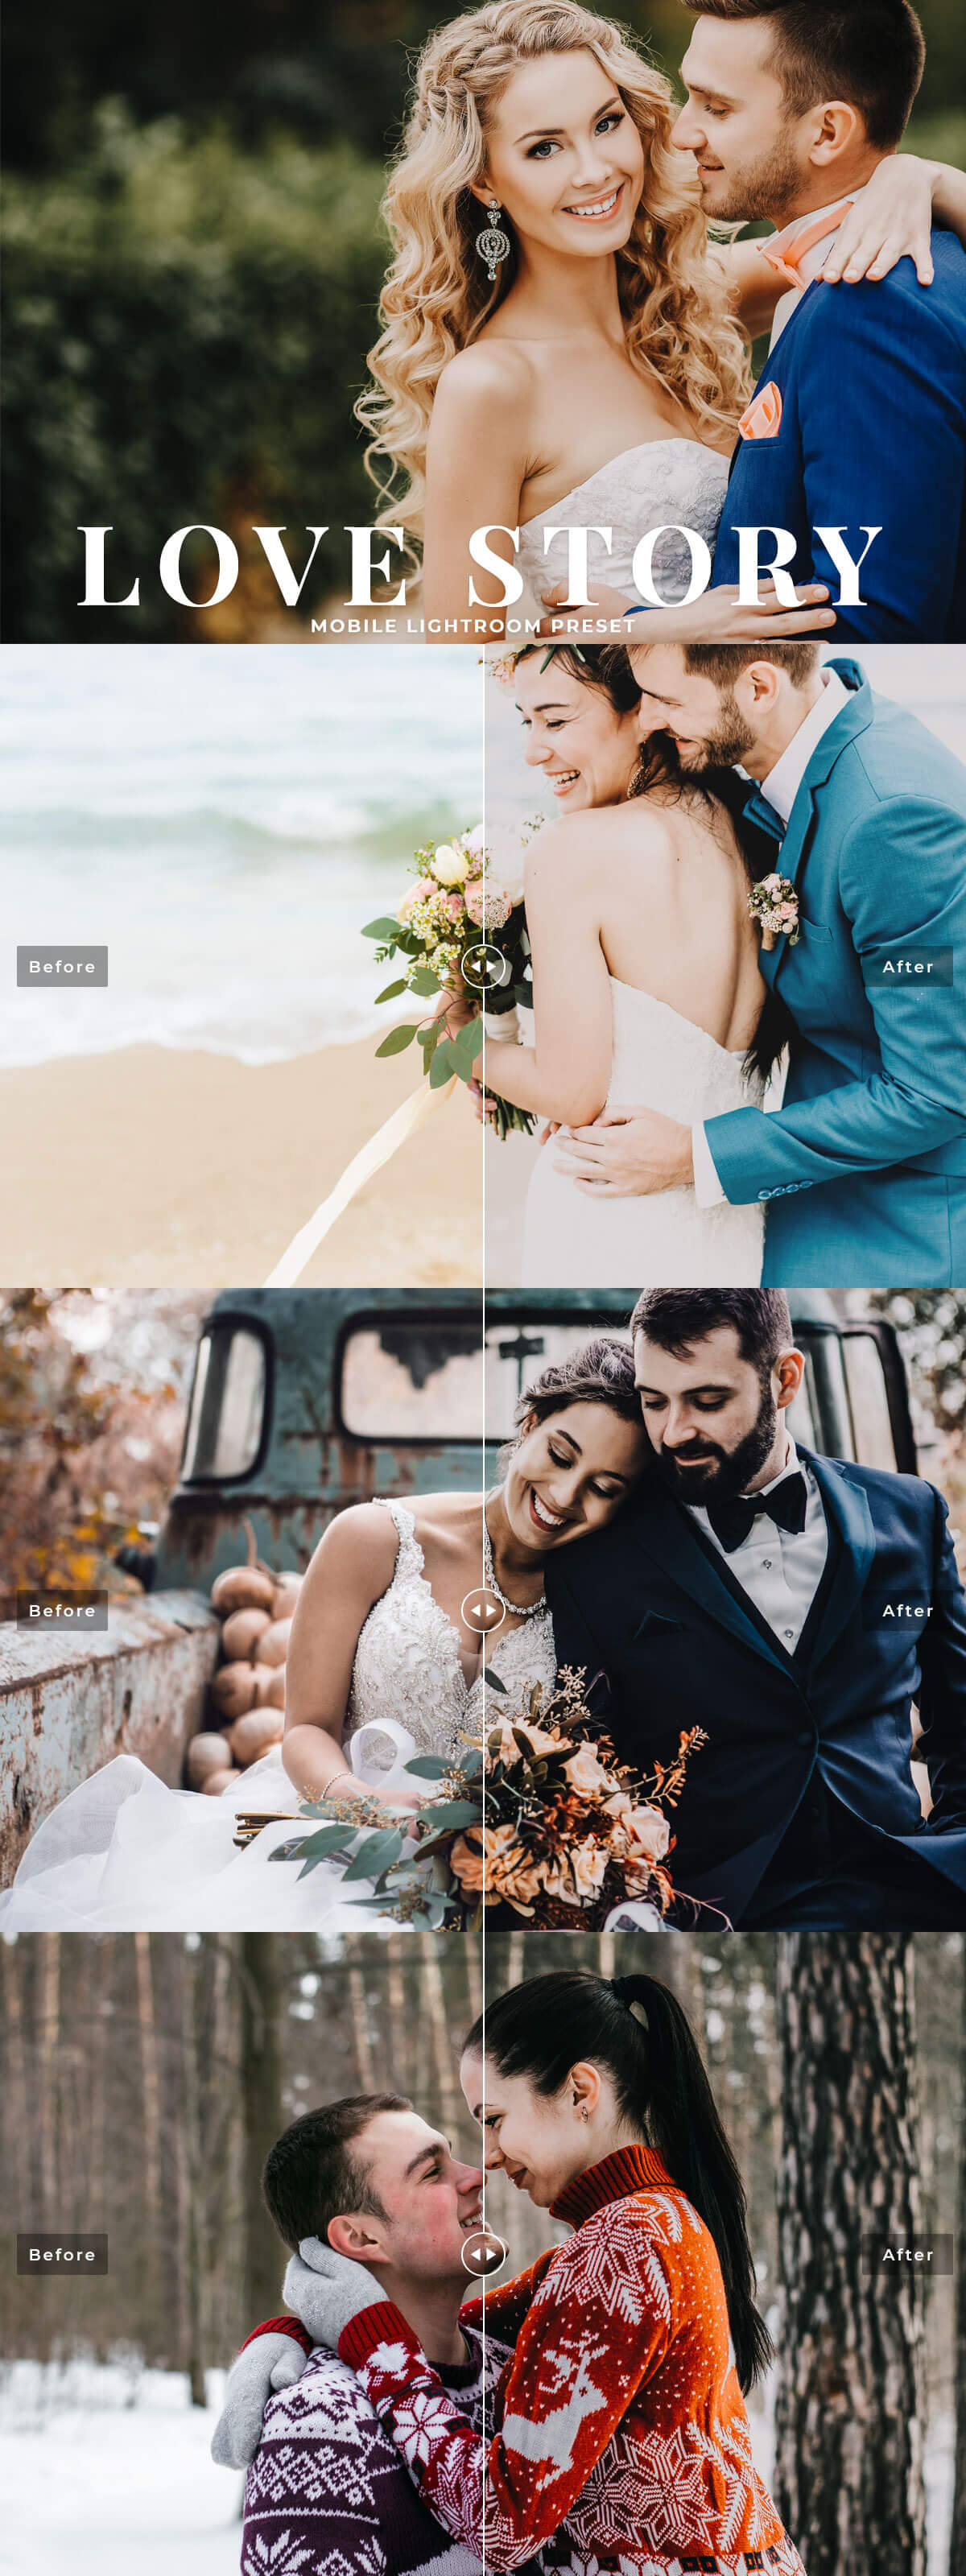 Free #Love #Story Mobile Lightroom #Preset contain single beautiful effect that will add romantic color look with a hint of warmth and clarity with your portraits in perfect finishing touch with just in one click.